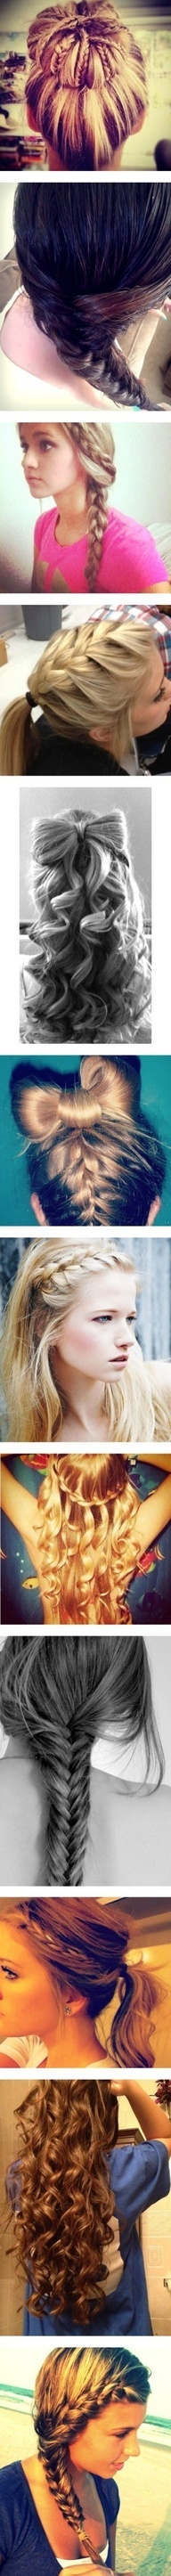 Superb 1000 Images About Kool Ways To Braid Hair On Pinterest How To Short Hairstyles For Black Women Fulllsitofus